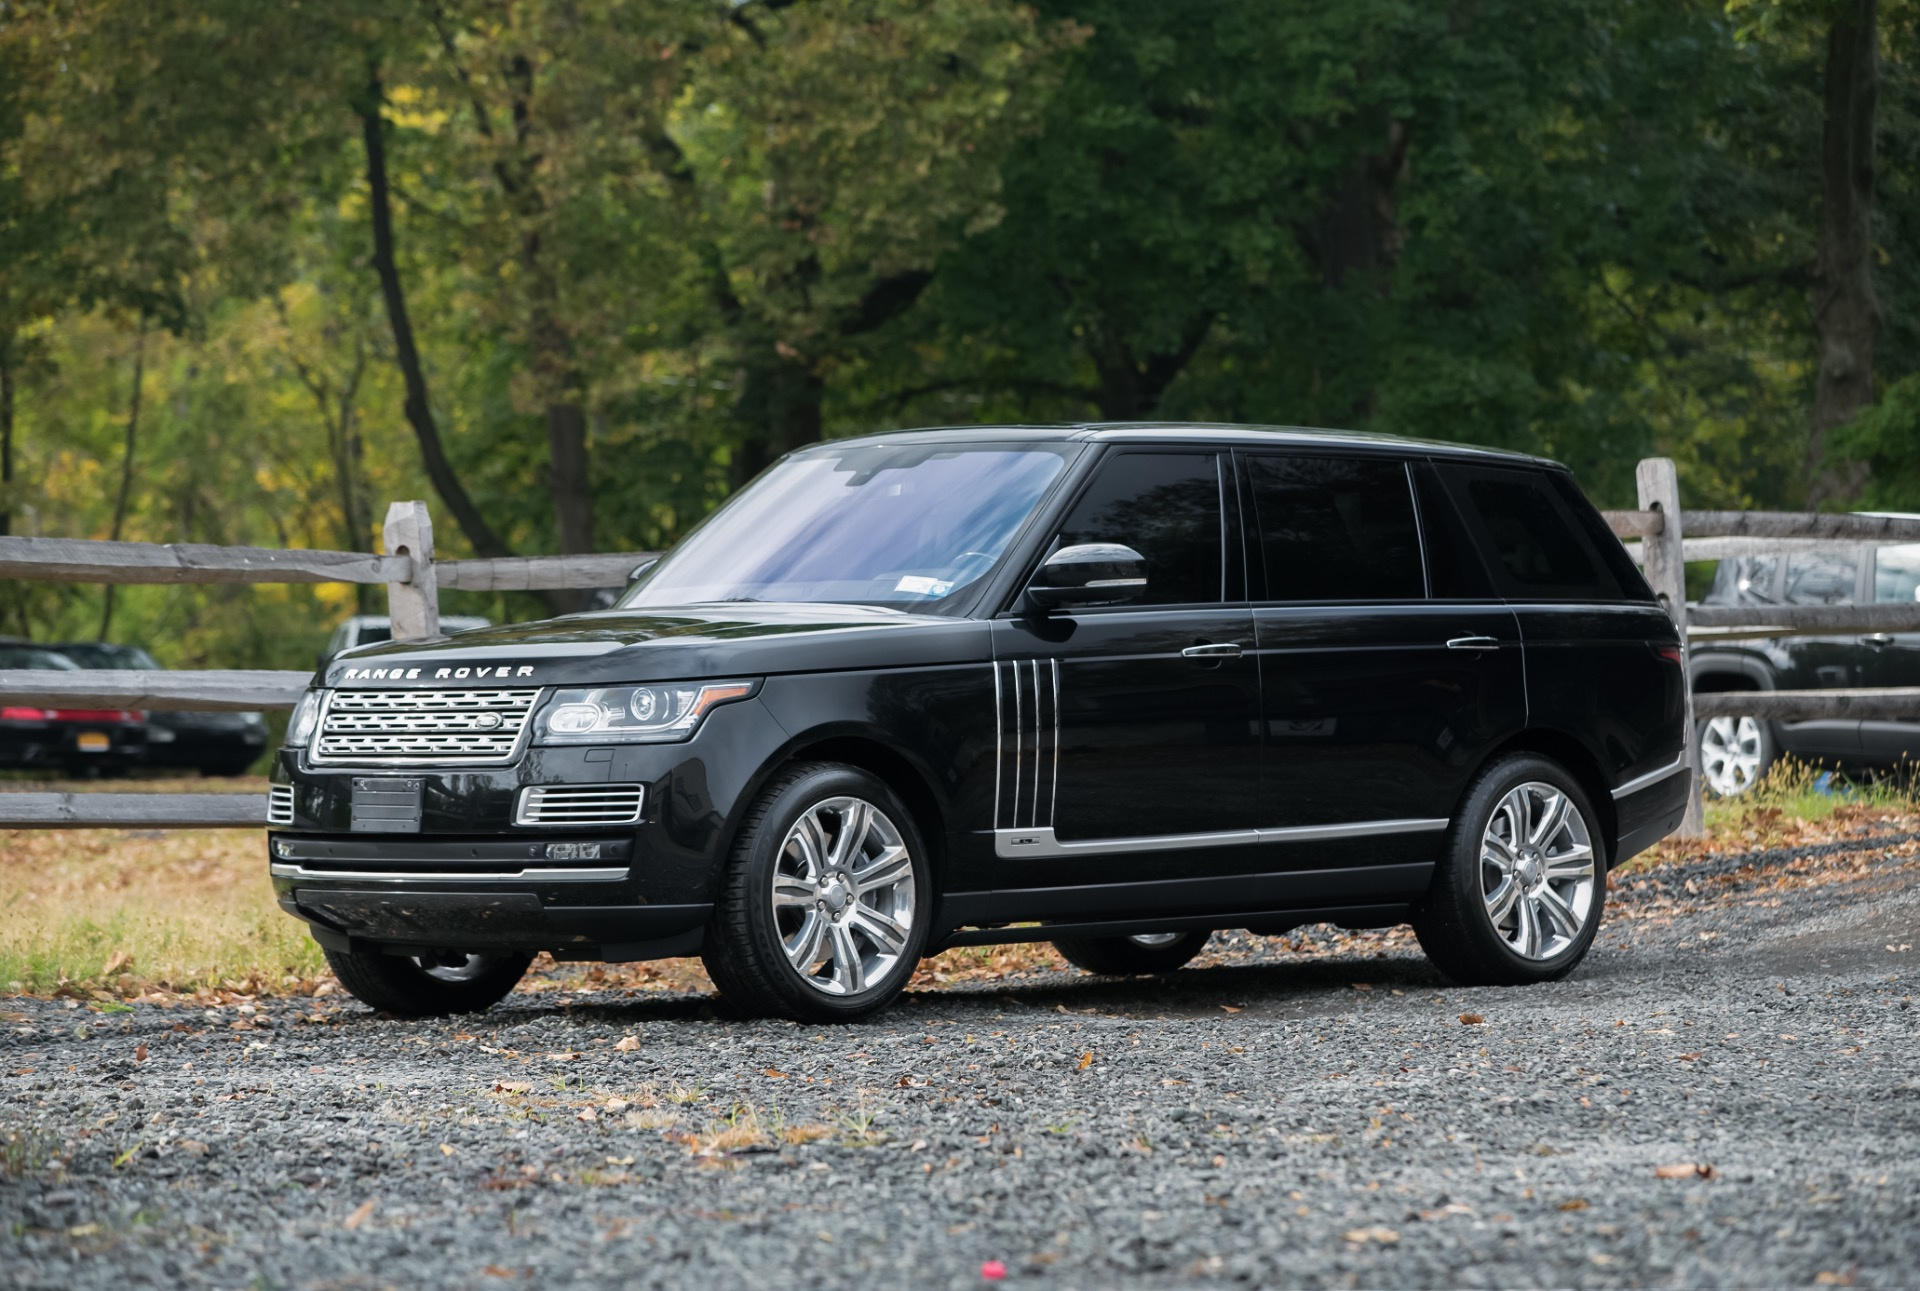 2015 Land Rover Range Rover Autobiography LWB Black Edition